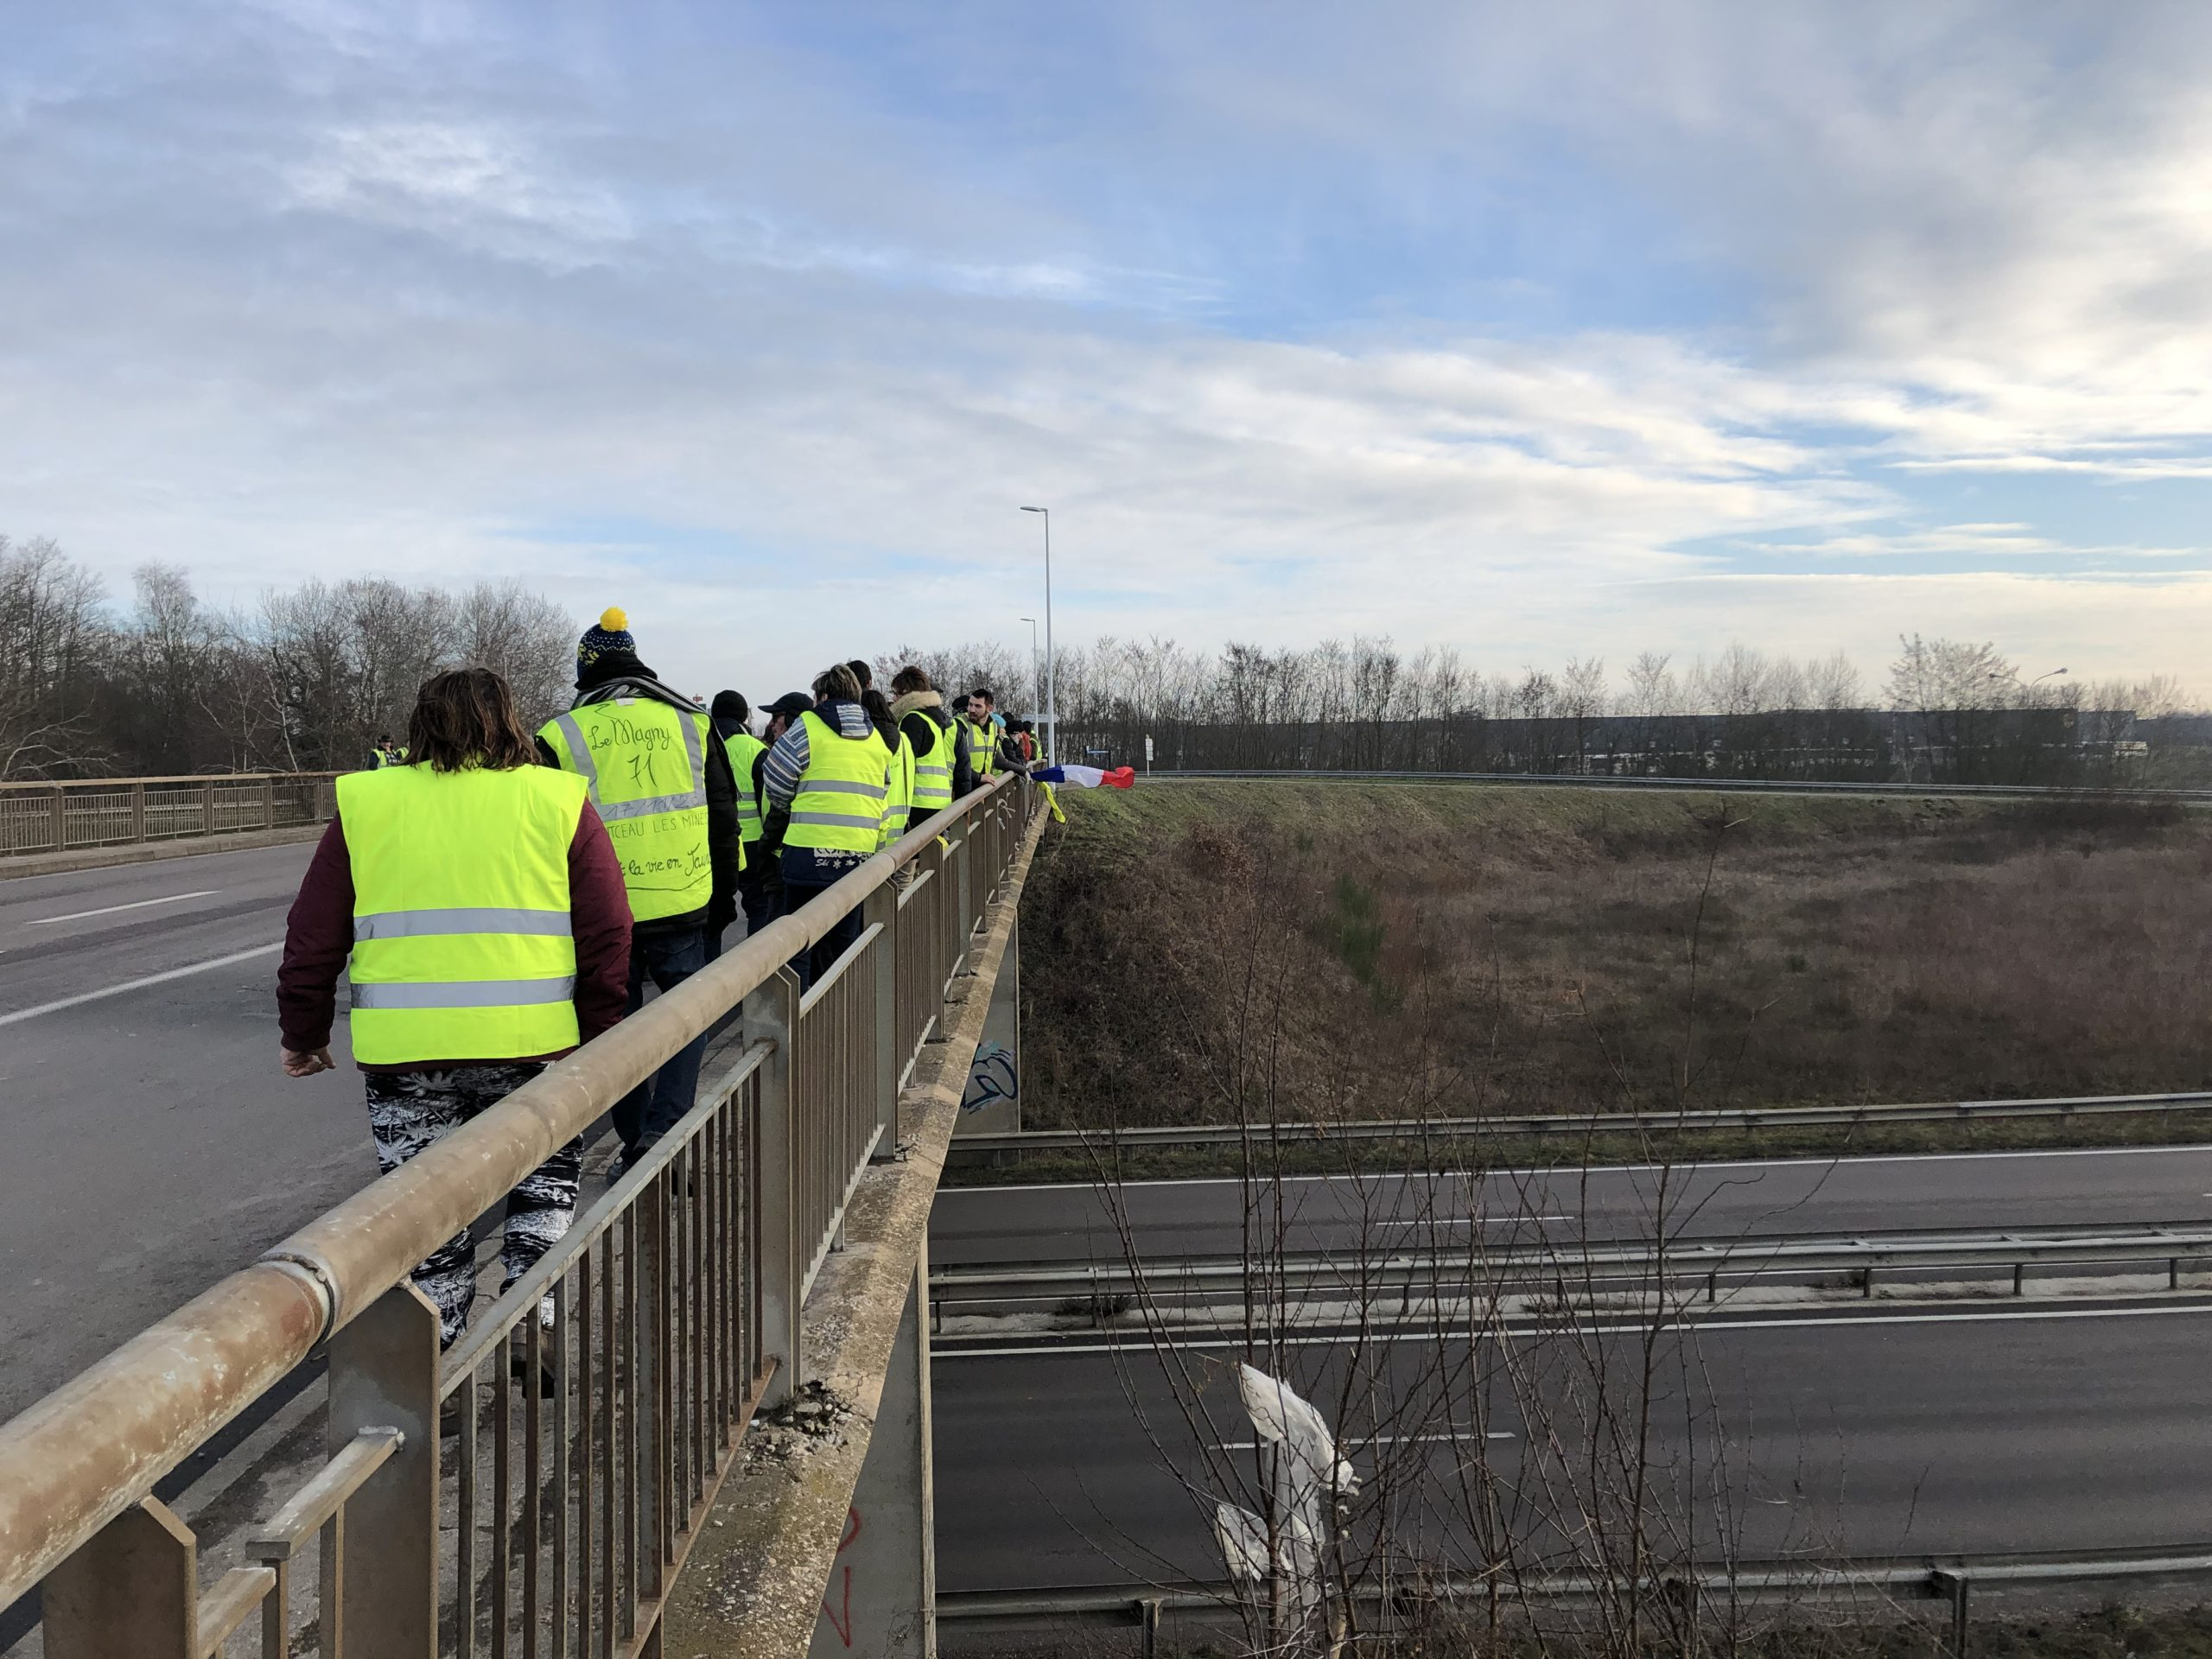 <i>Gilet jaunes</i> on an overpass above a highway